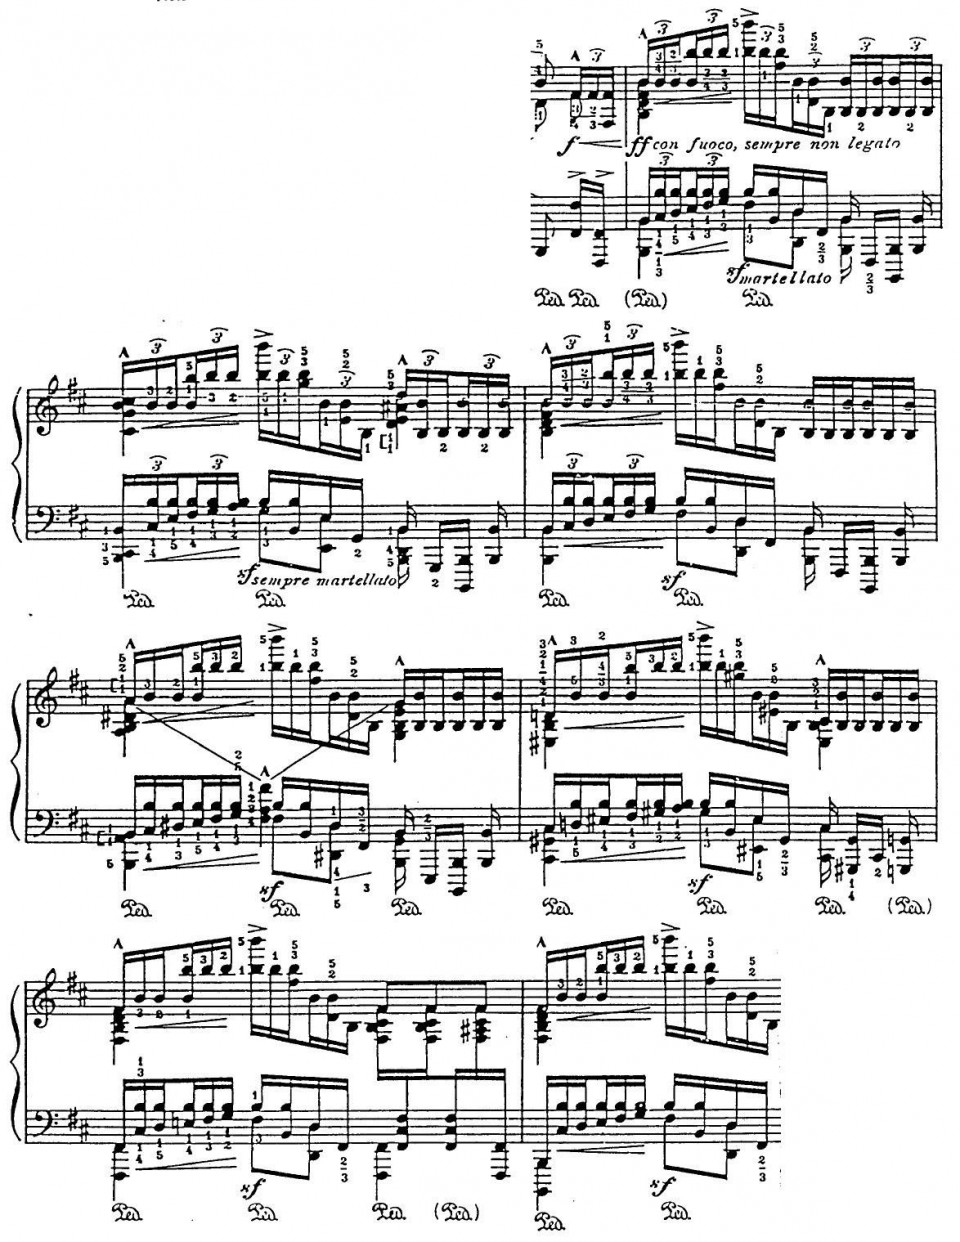 Figure 3(b) A late variation of the Passacaglia. Can you find the melodic line of the theme?